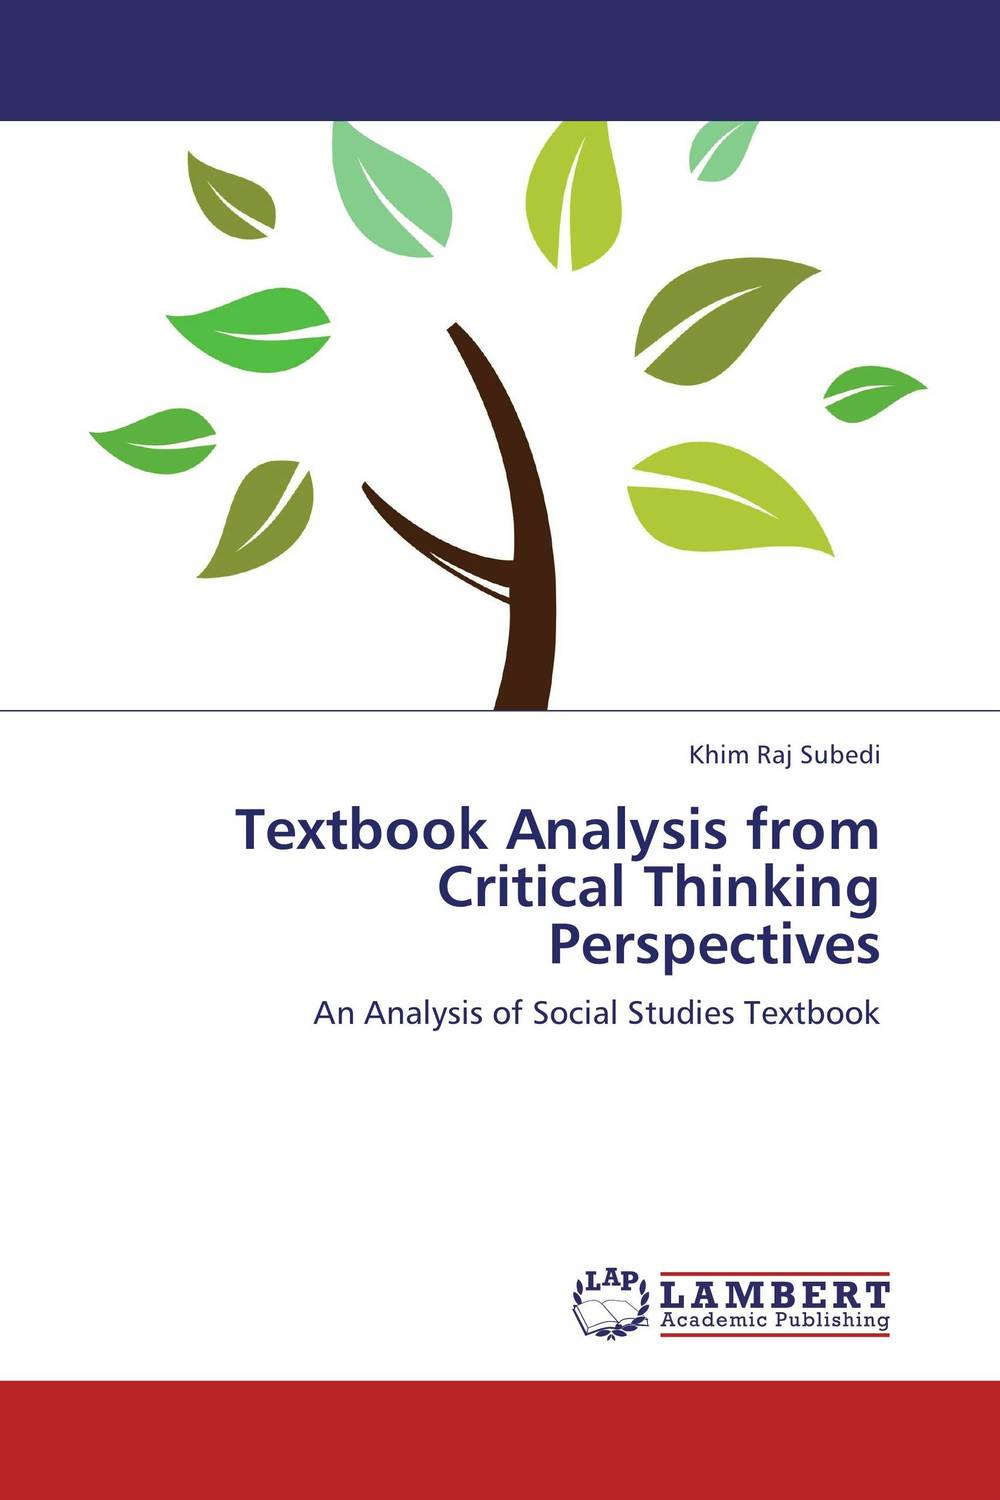 Textbook Analysis from Critical Thinking Perspectives